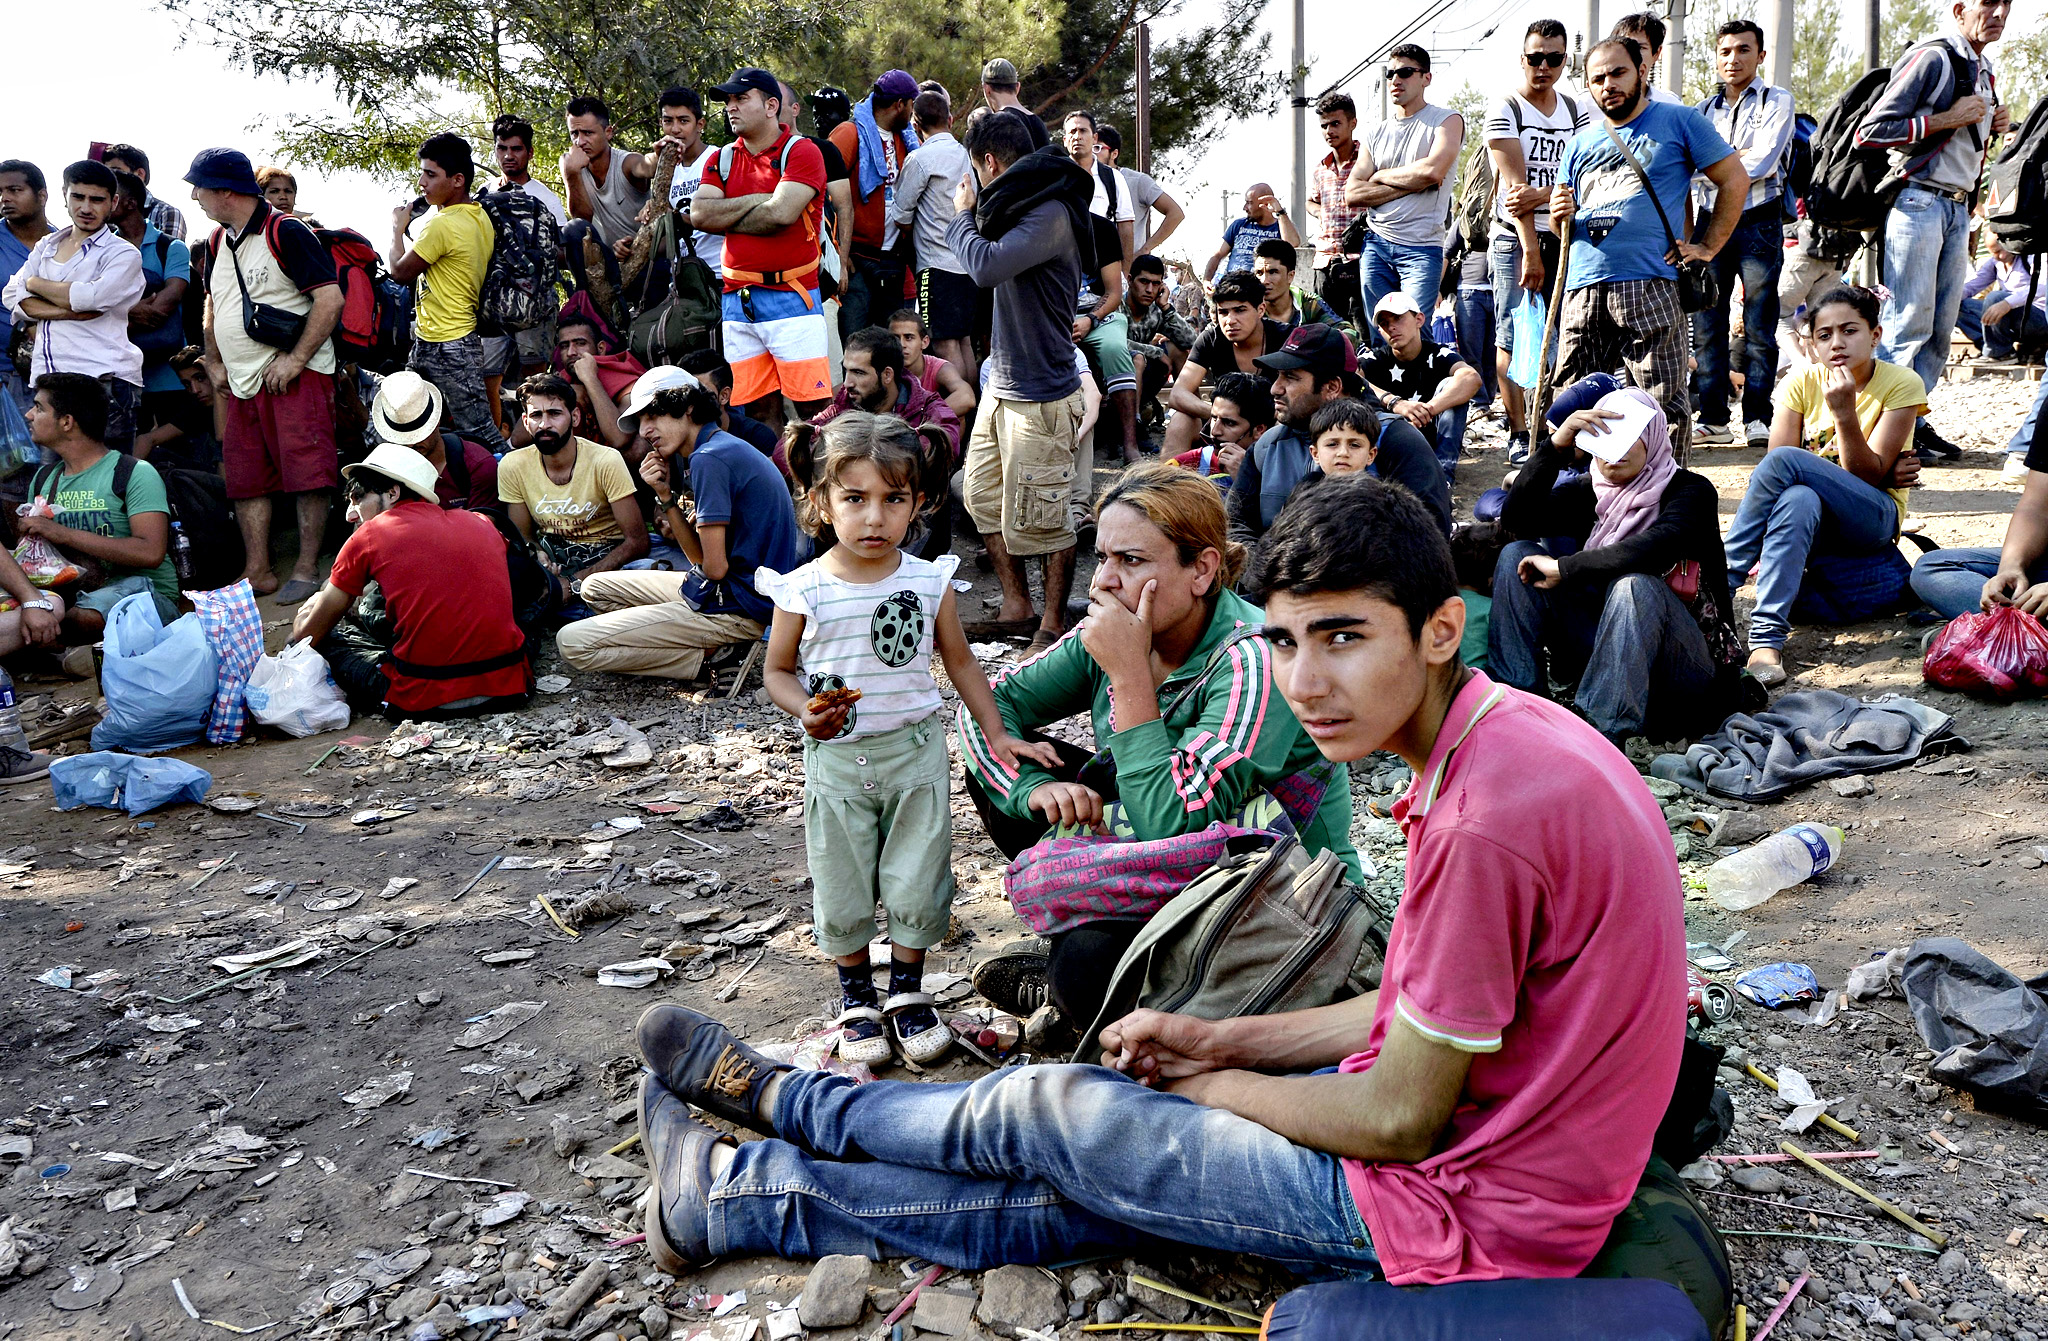 Migrants wait on the Greek side of the border to pass into Macedonia near southern city of Gevgelija, The Former Yugoslav Republic of Macedonia, 20 August 2015. Macedonian special police forces arrived this morning and blocked the illegal border crossing between Macedonia and Greece. They don't give permission to the migrants to pass in Macedonia. Number of migrants who passing through Macedonia increase day by day. From the beginning of the year to mid-June 2015, nearly 160,000 migrants landed in the southern European countries, mainly Greece and Italy, on their way to wealthier countries in Western and Northern Europe, according to estimates by the International Organization for Migration (IOM